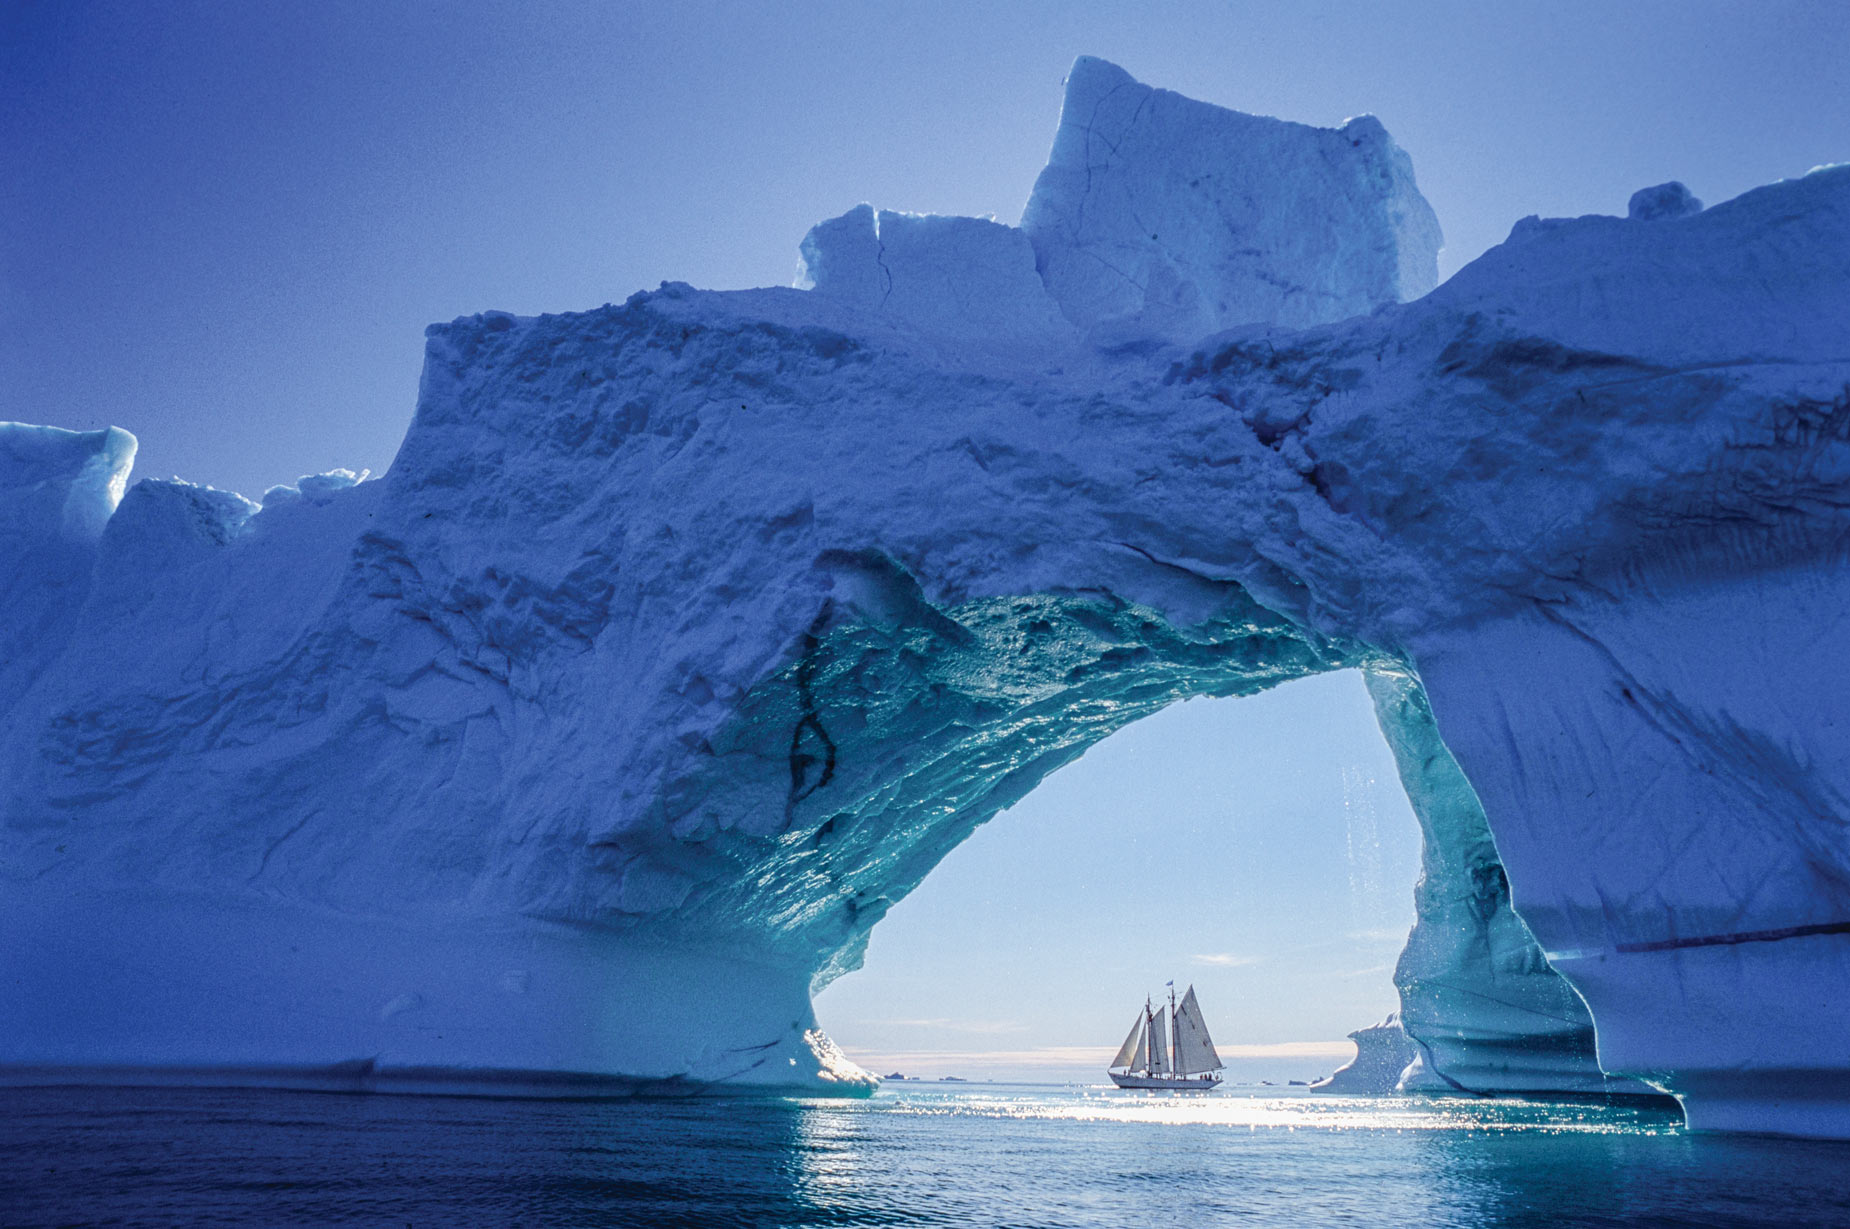 In 1991, in Disko Bay, on Greenland's west coast, the schooner Bowdoin passed an iceberg with a dramatic arch.